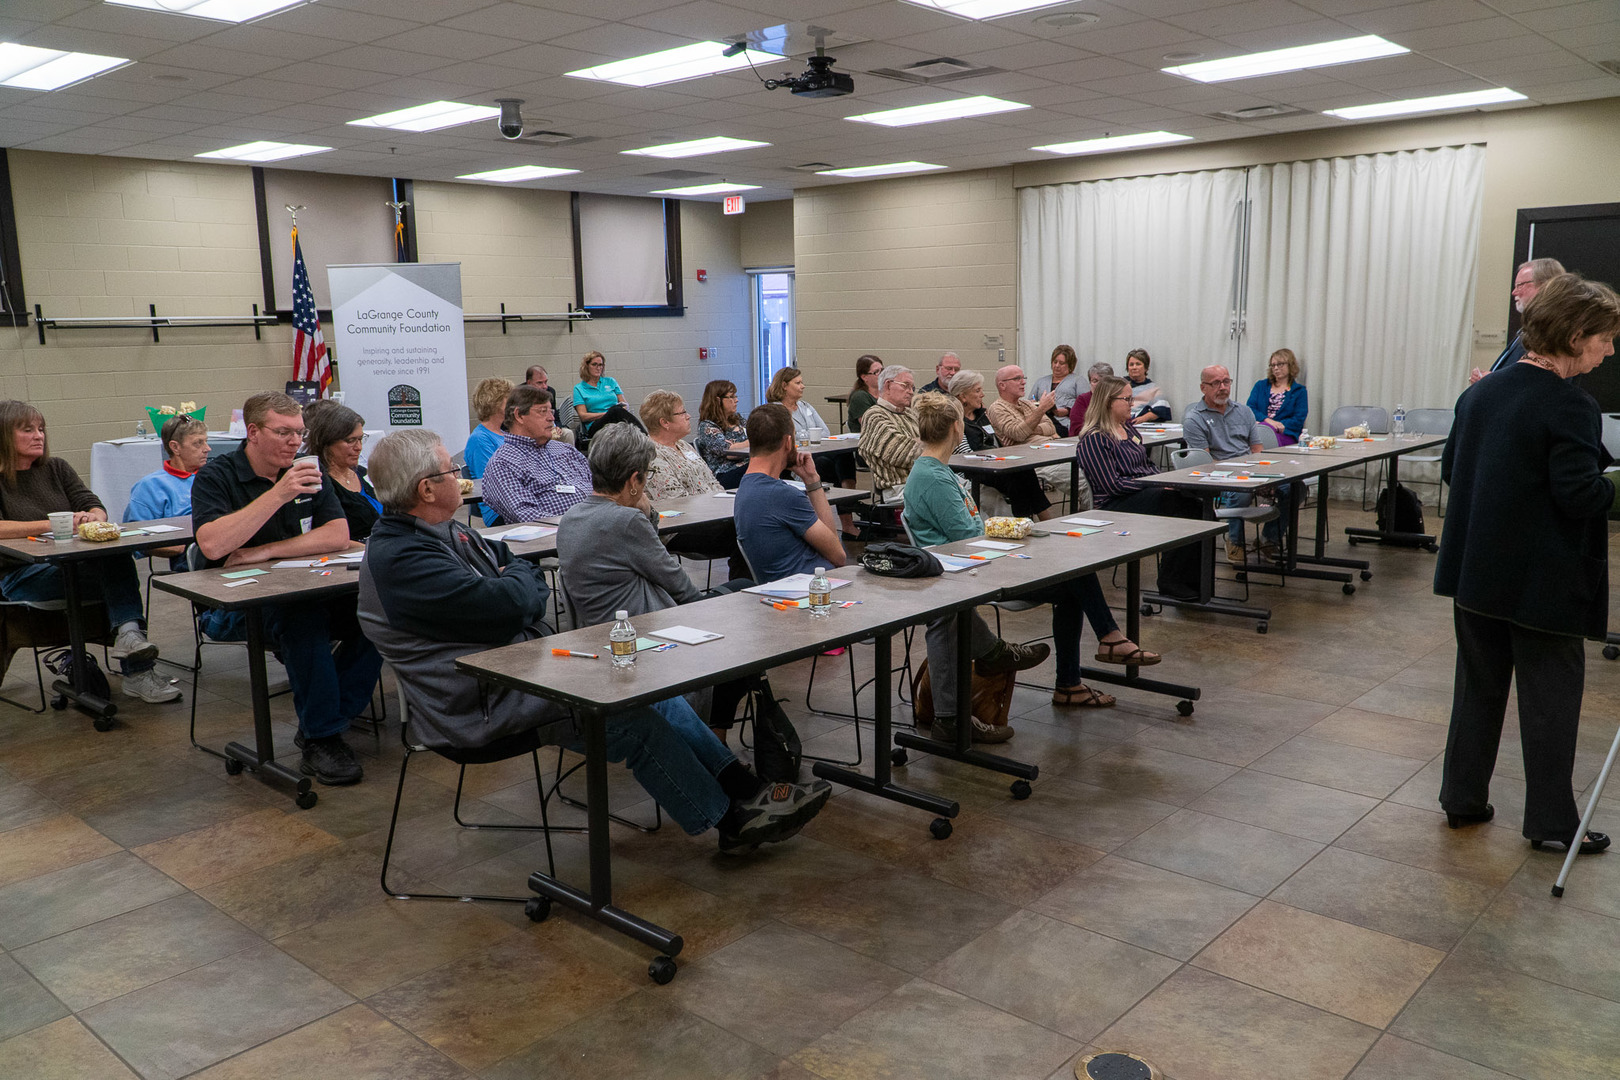 Oct. 8, 2019 Envision Community Conversation at the LaGrange County Public Library